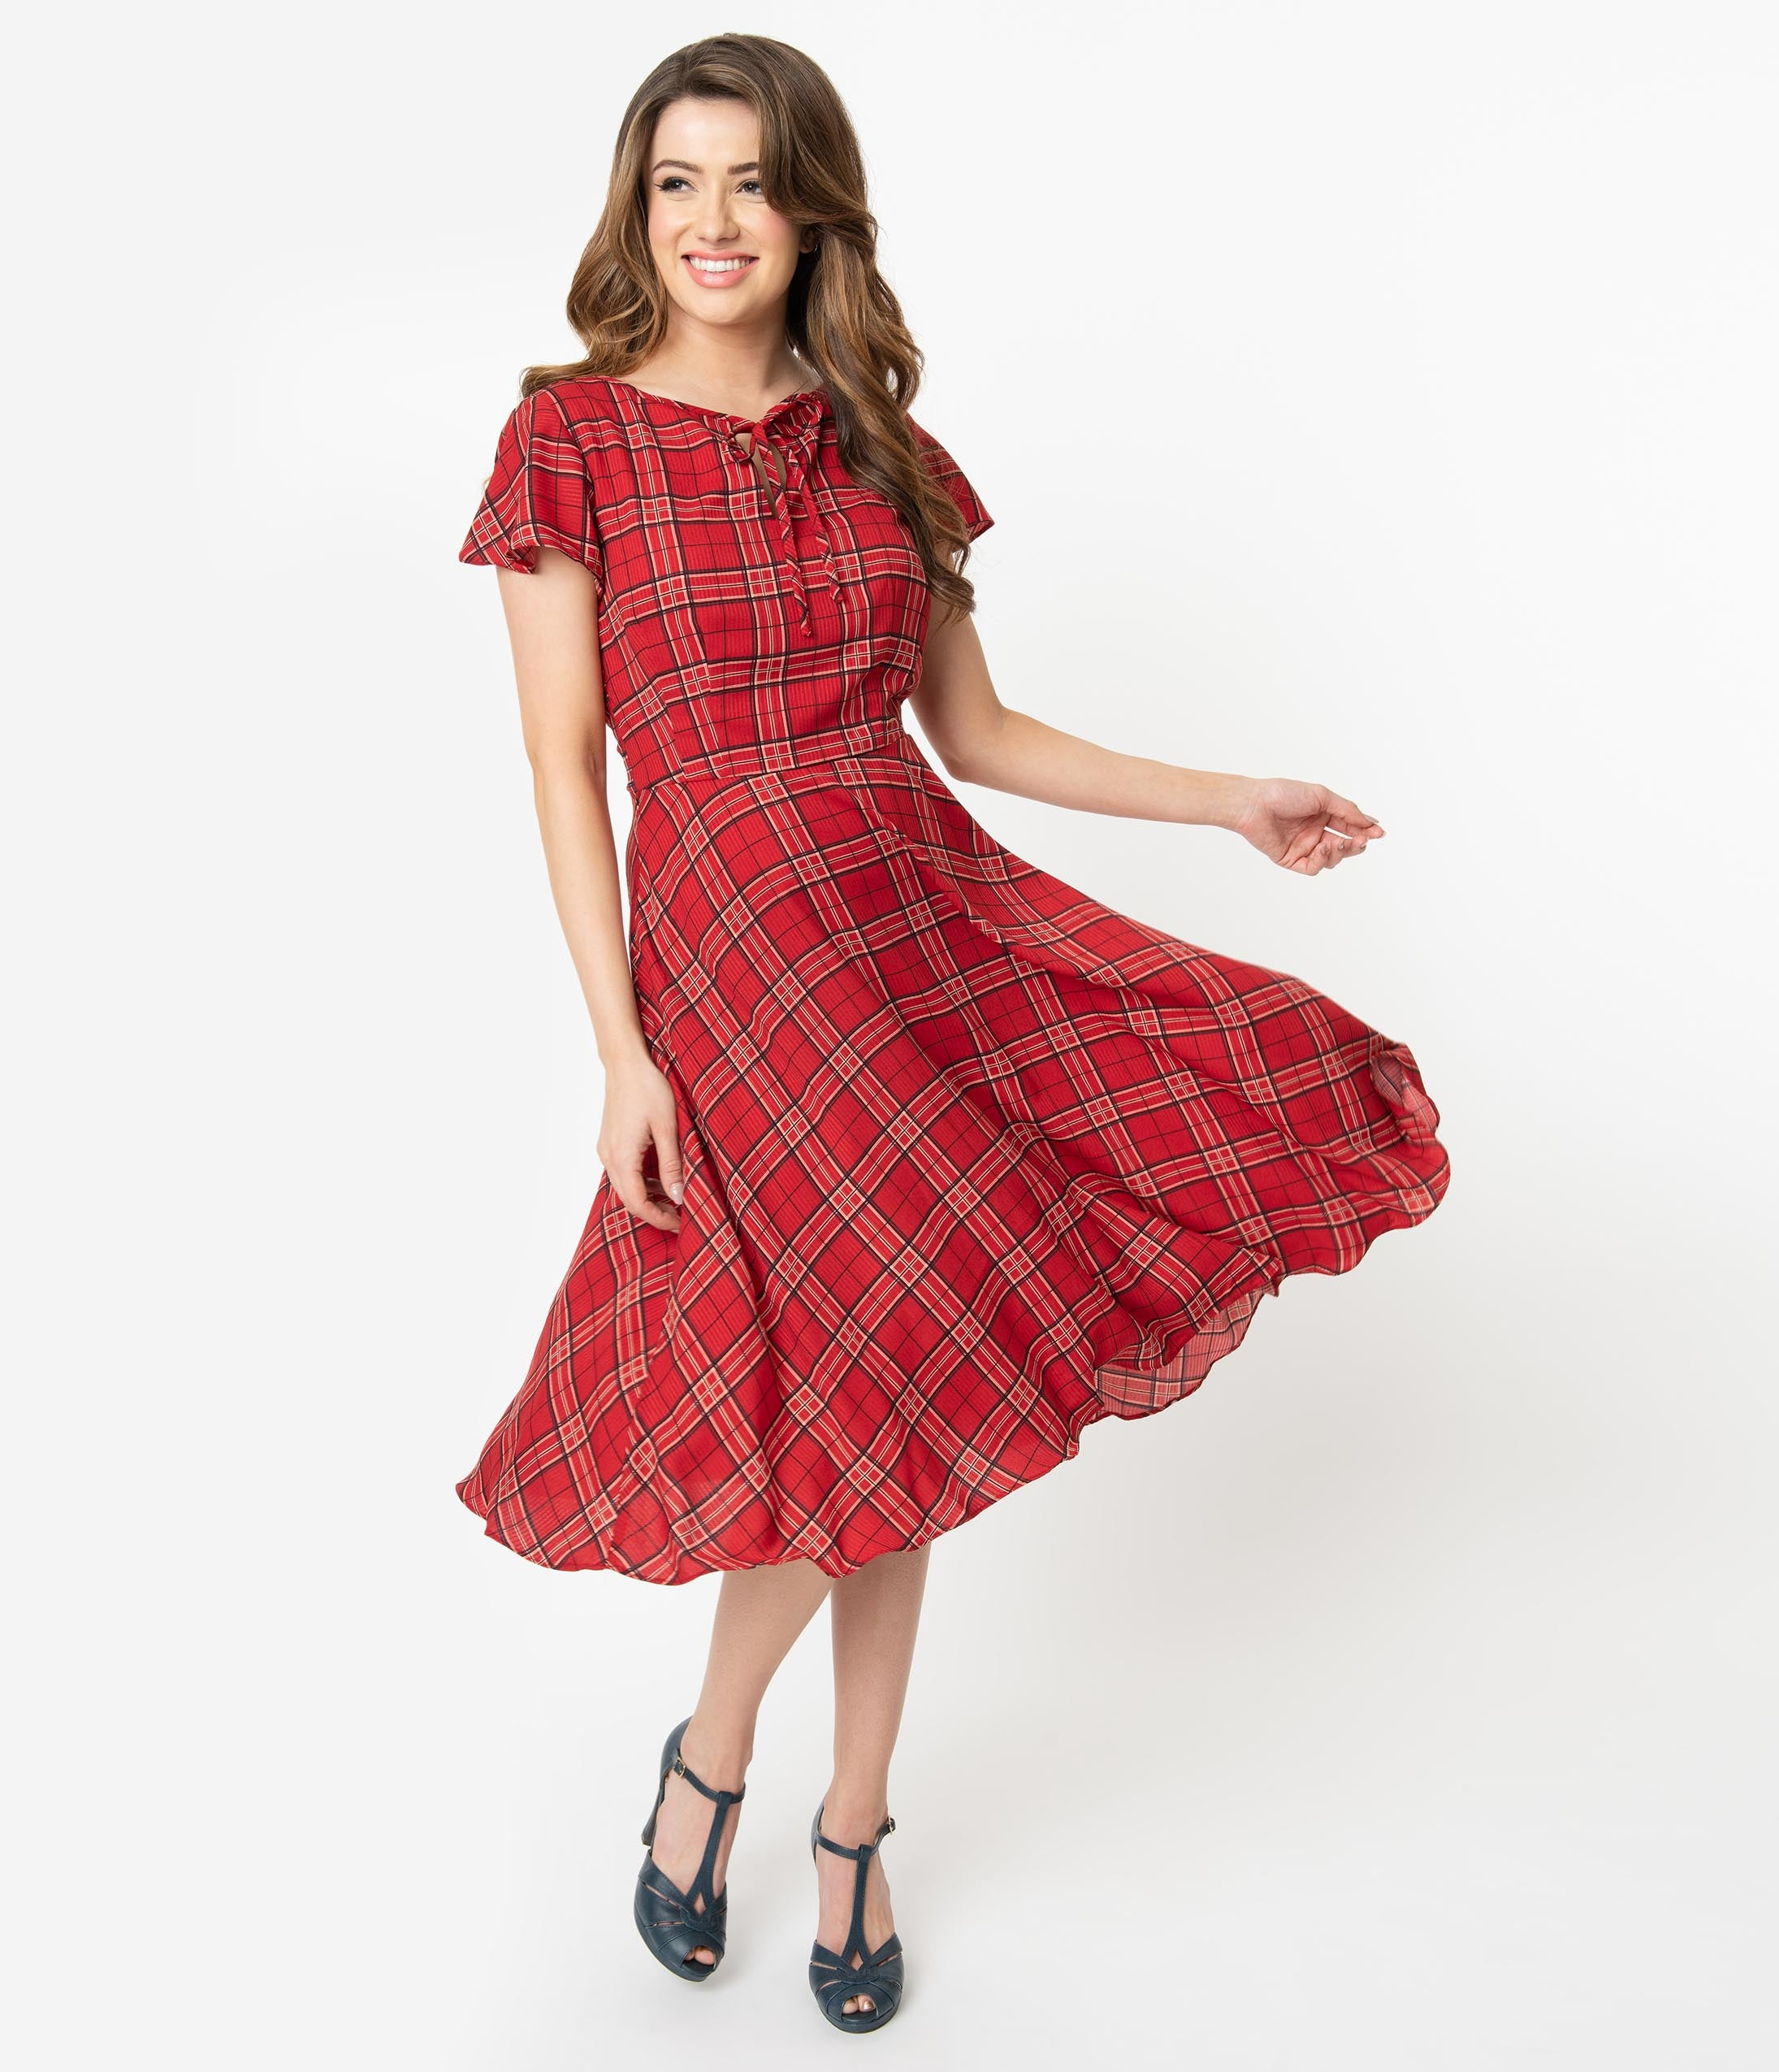 Vintage Christmas Gift Ideas for Women Unique Vintage 1940S Style Red Plaid Formosa Swing Dress $88.00 AT vintagedancer.com